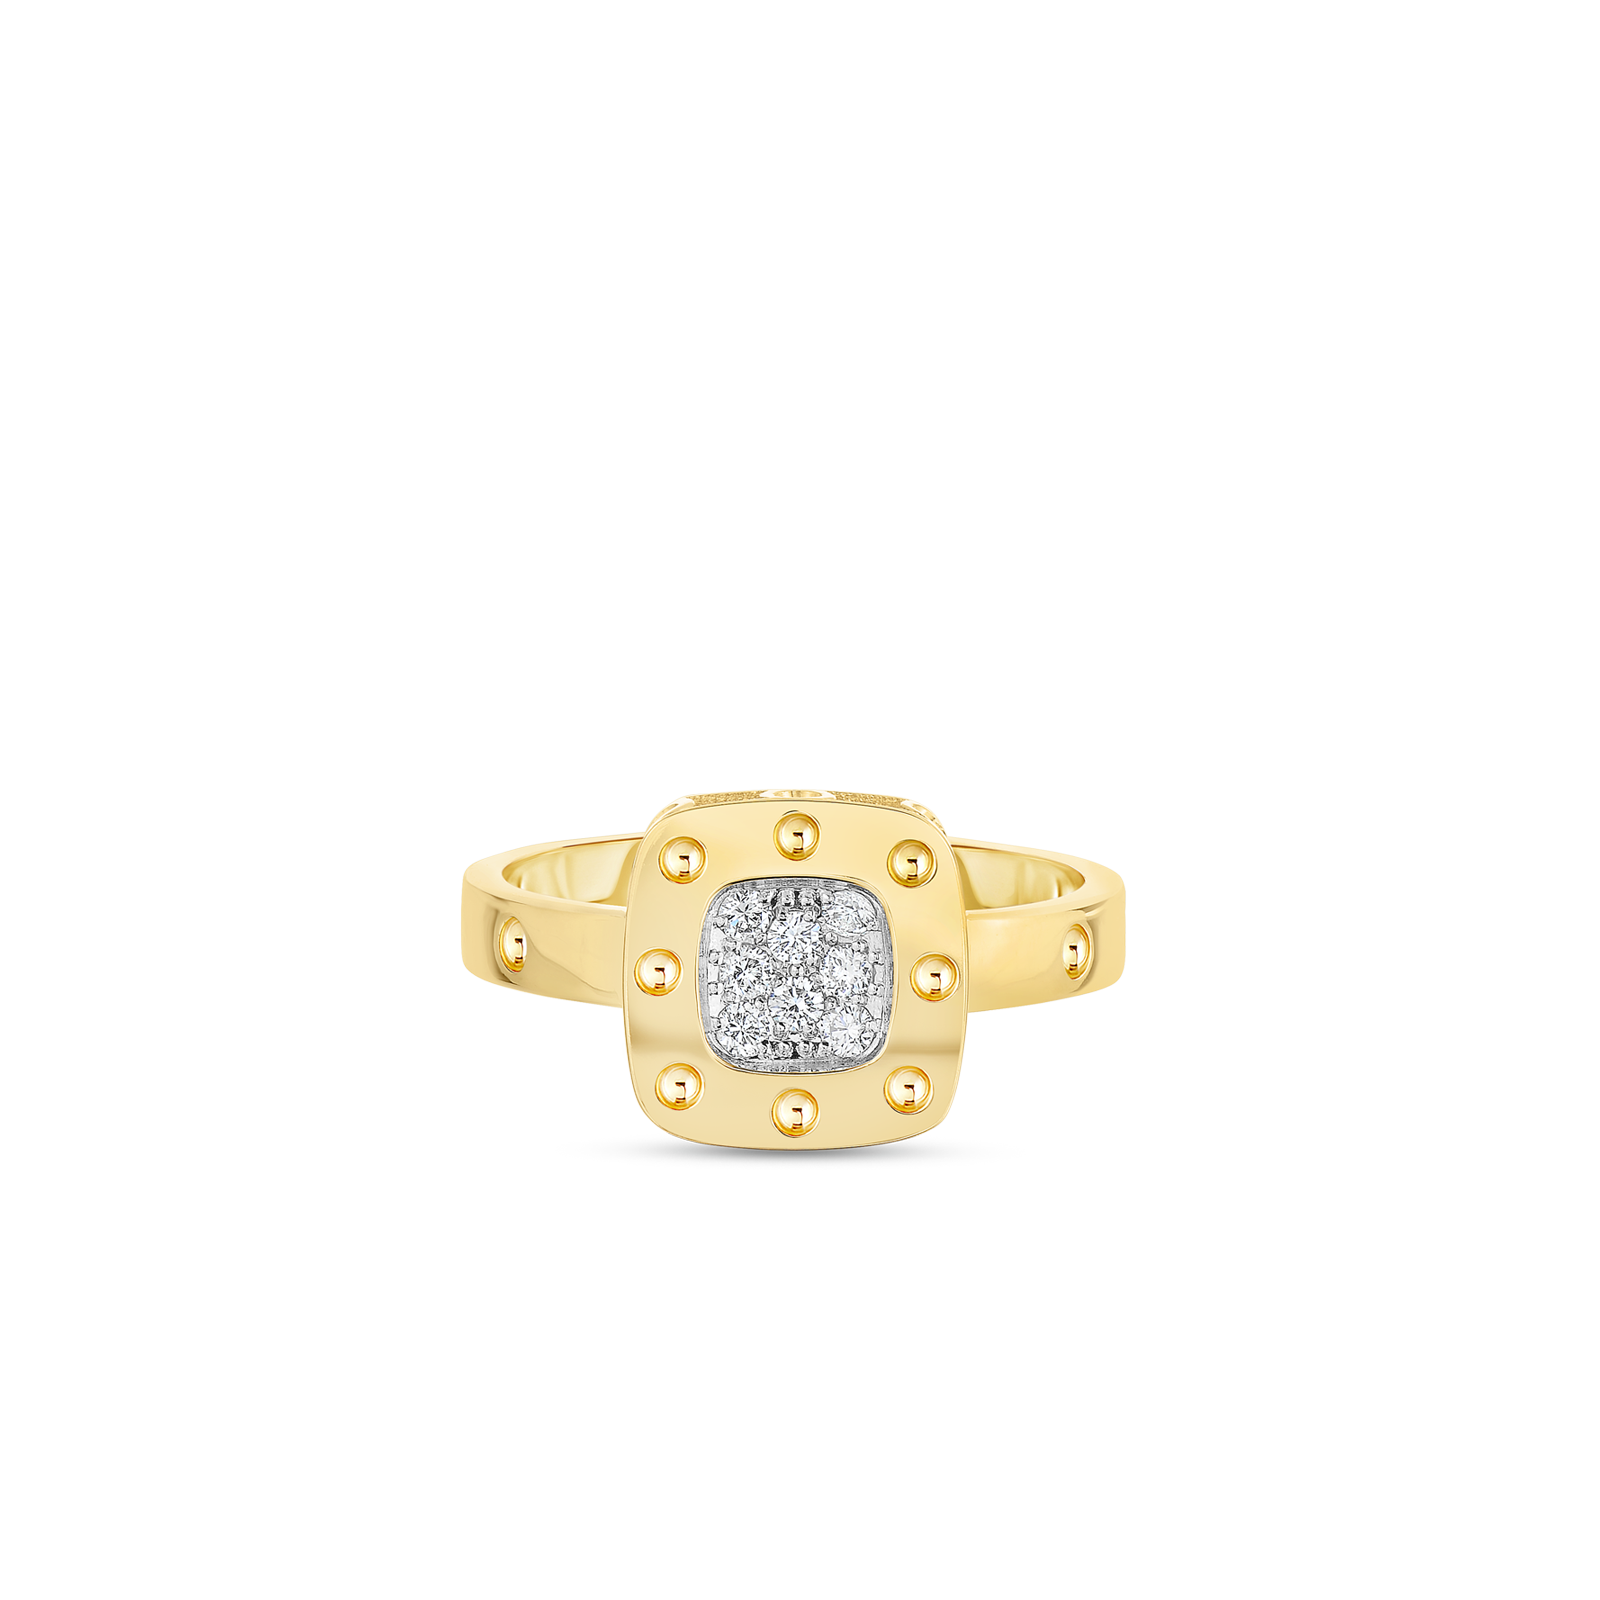 Roberto-Coin-Pois-Moi-18K-Yellow-Gold-and-18K-White-Gold-Ring-with-Diamonds-777921AJ65X0